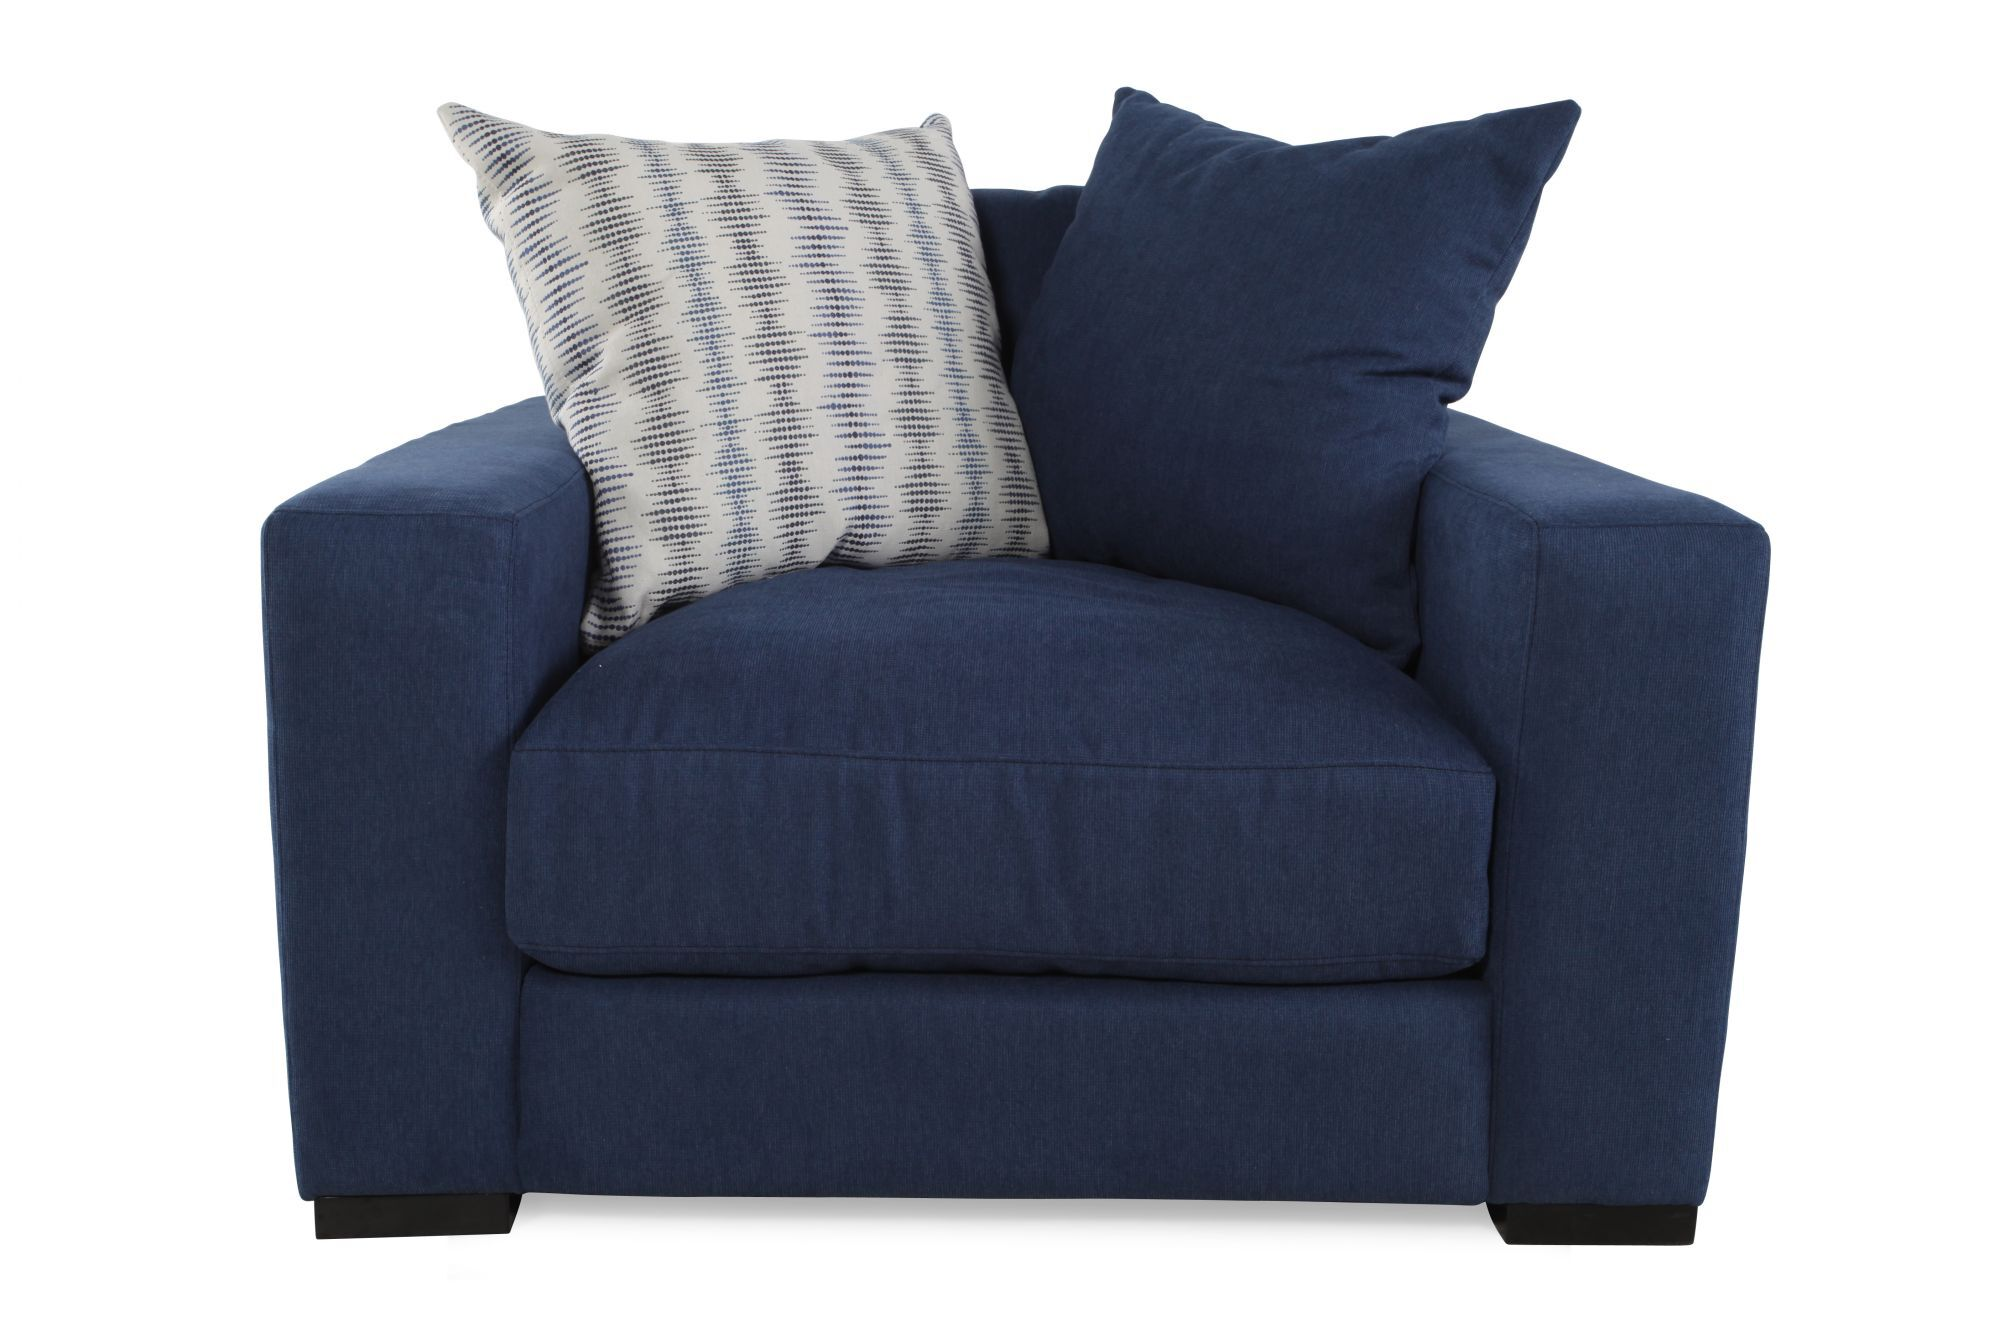 Blue Accent Chair With Arms Low Profile Casual Arm Chair In Blue Mathis Brothers